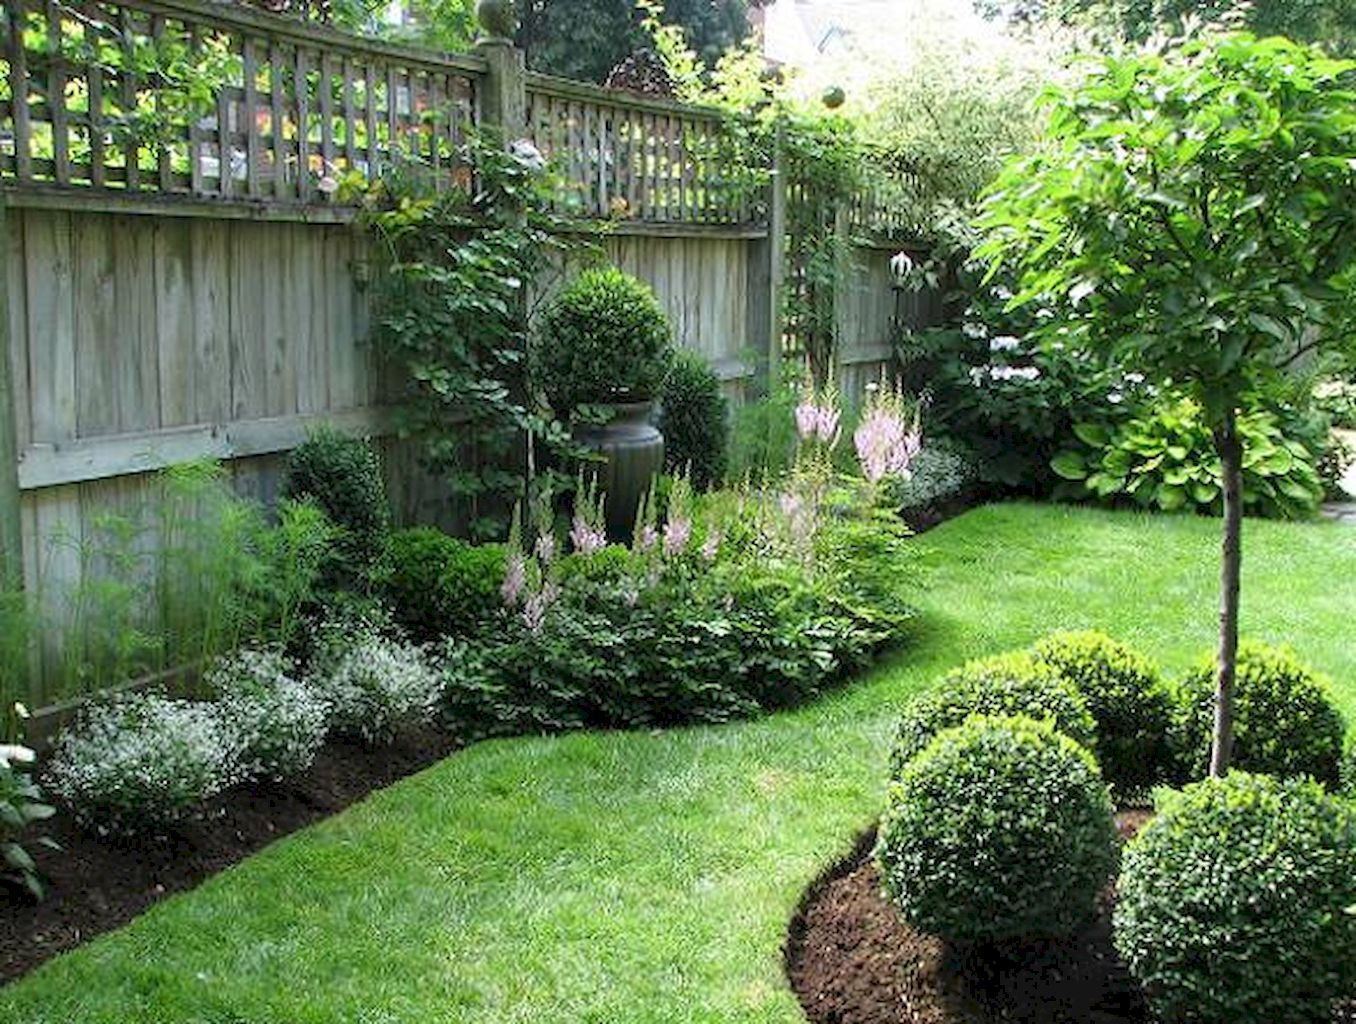 Pin Cyndie Duhan On Landscaping Garden Privacy Fence intended for 15 Genius Concepts of How to Make Backyard Fence Landscaping Ideas